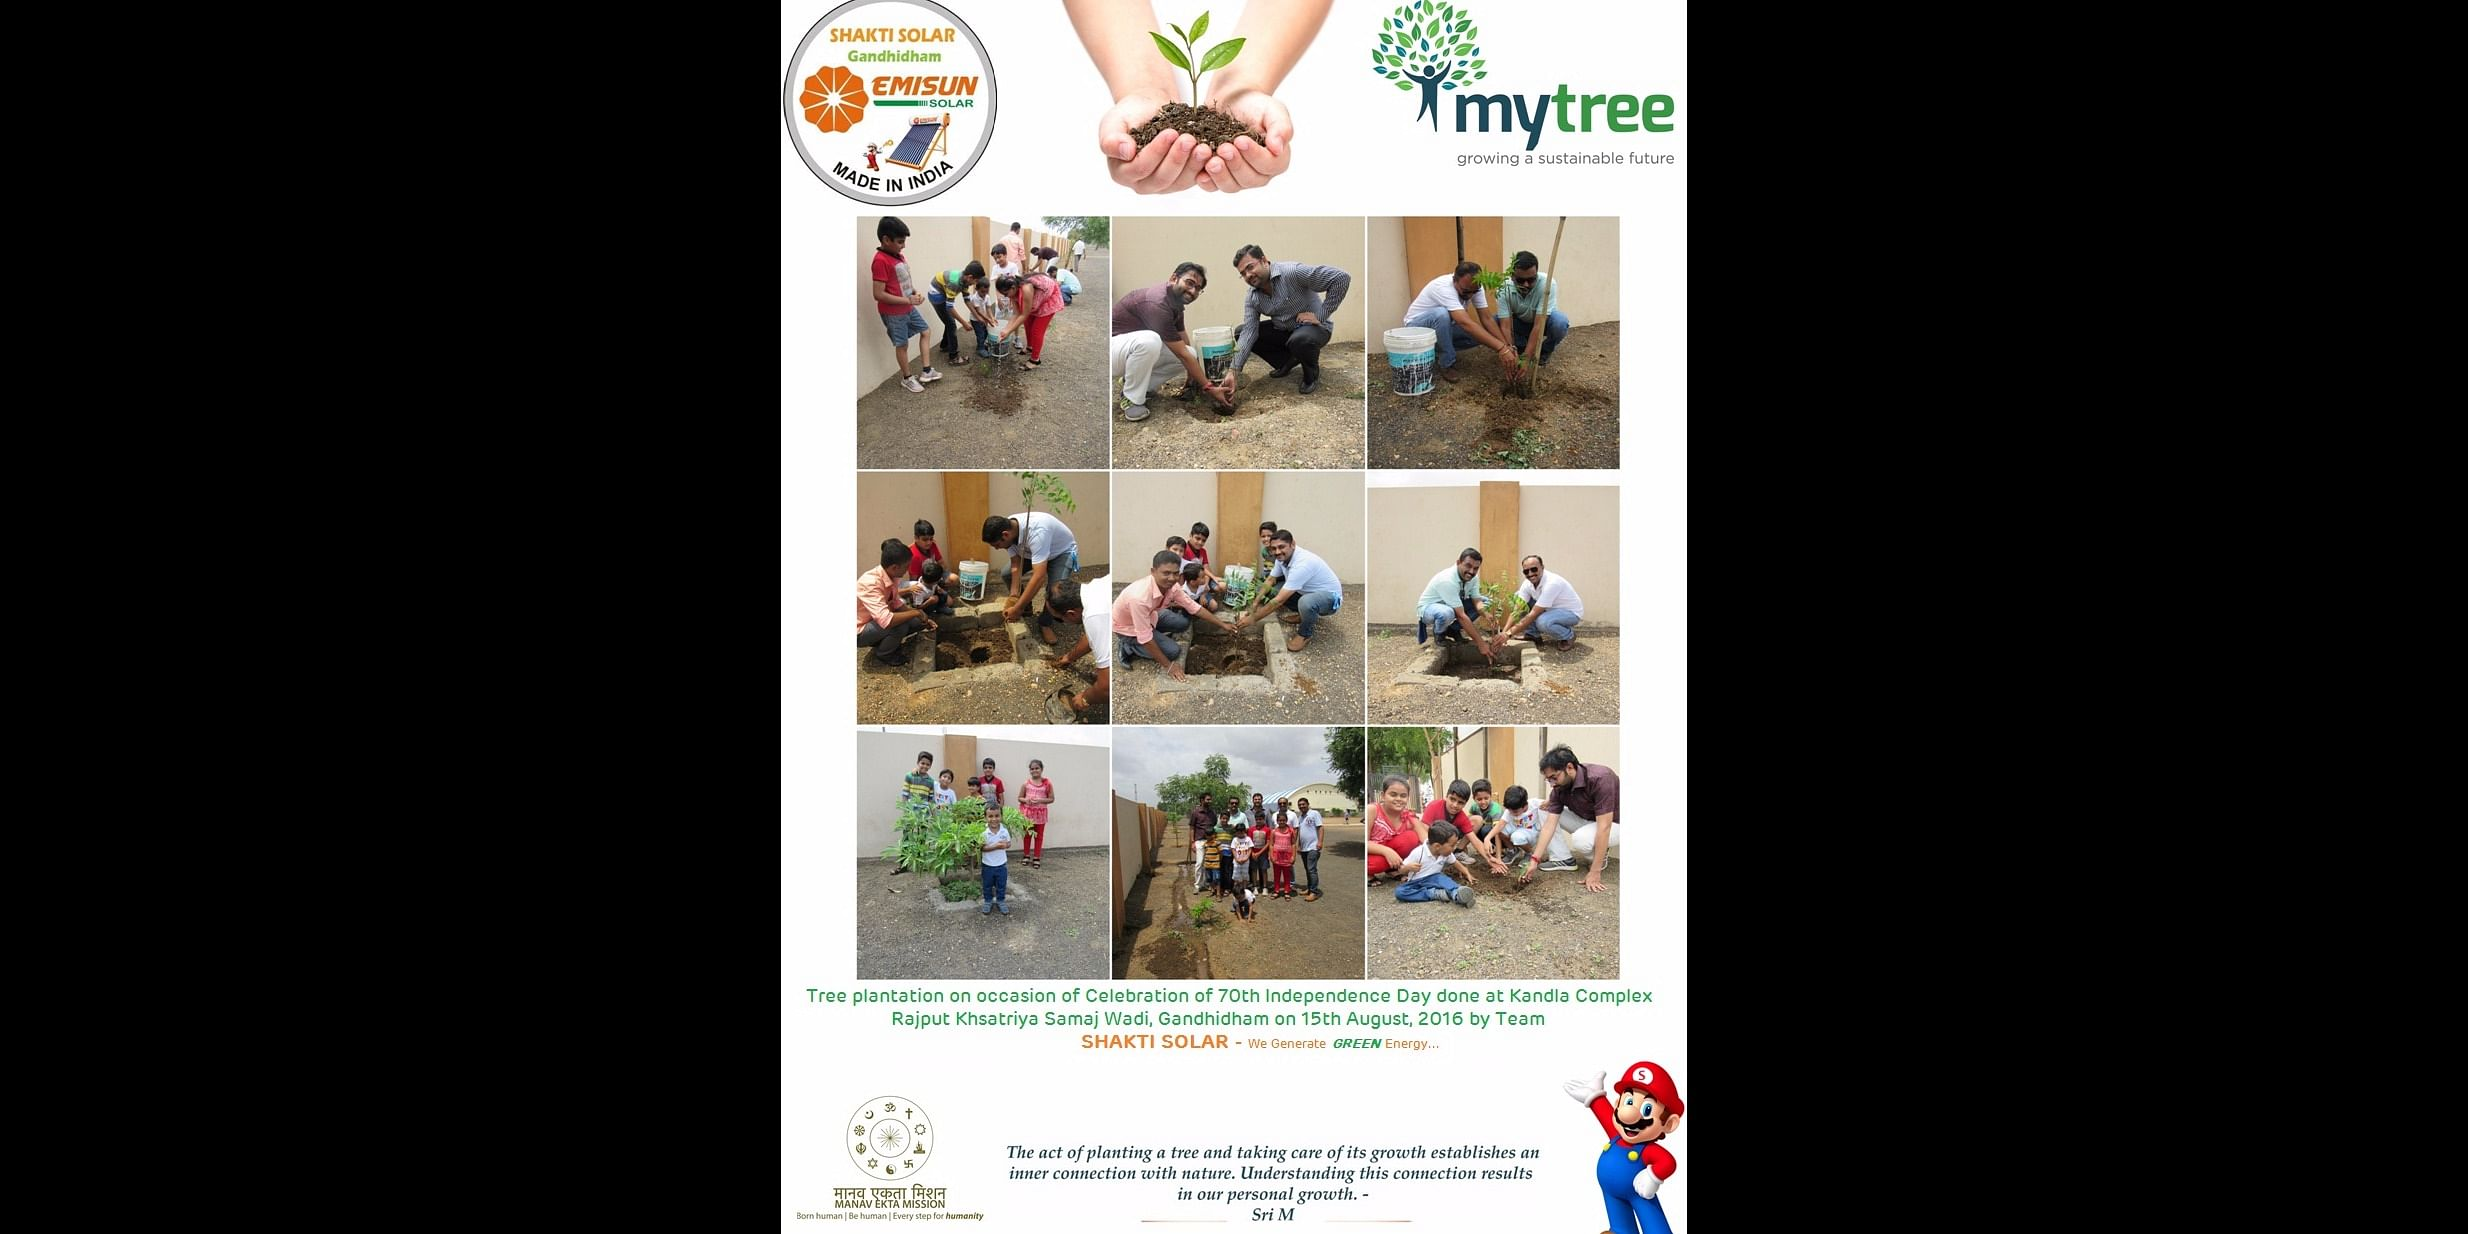 Tree plantation by young Team on occasion of Independence Day held at Gandhidham under #MyTree initiative.